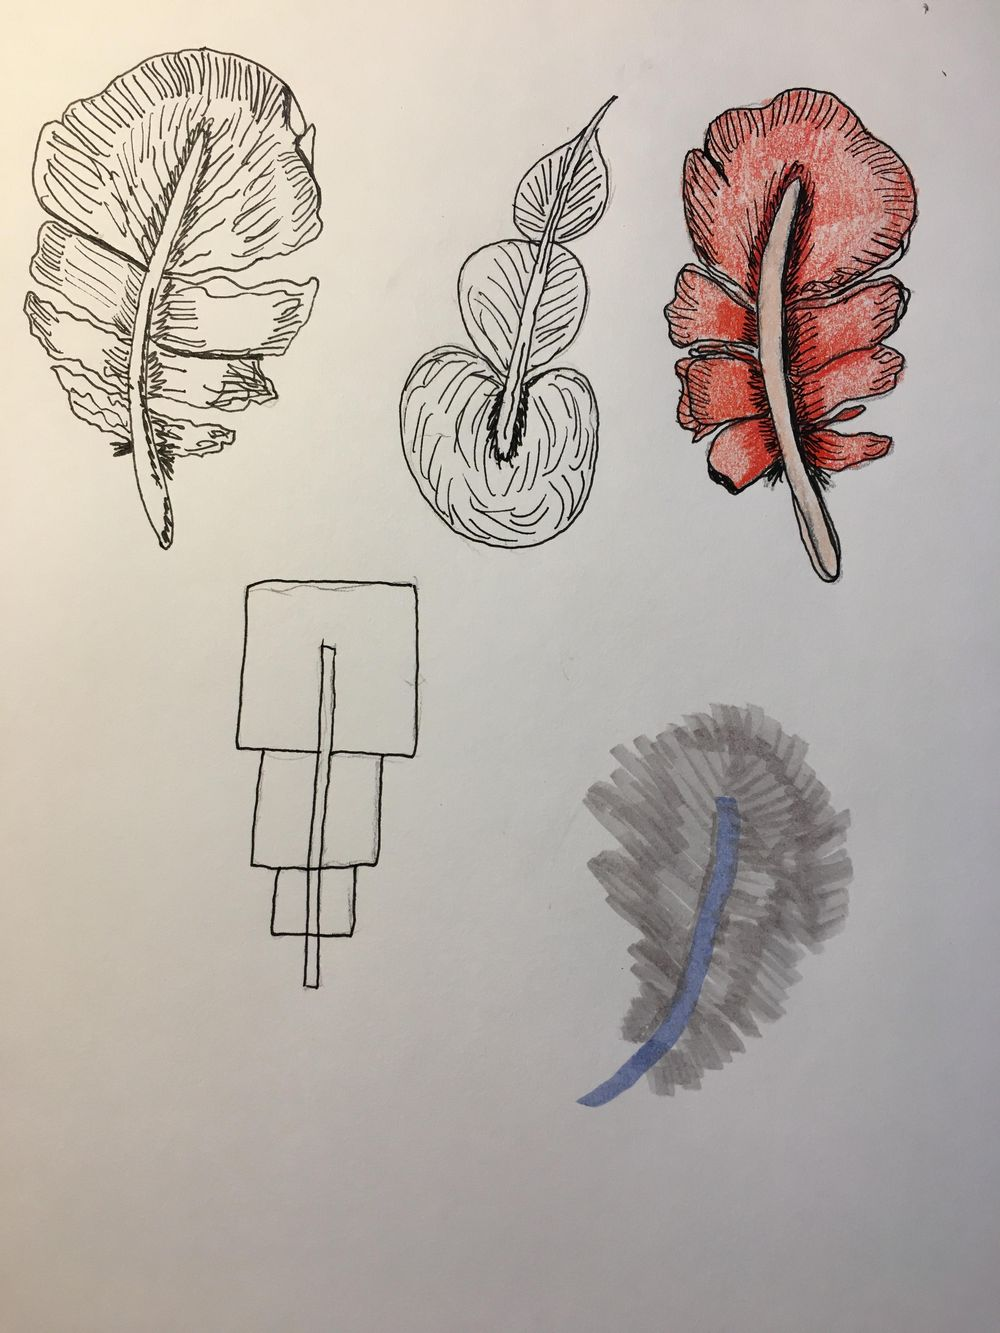 Drawing without fear - image 6 - student project